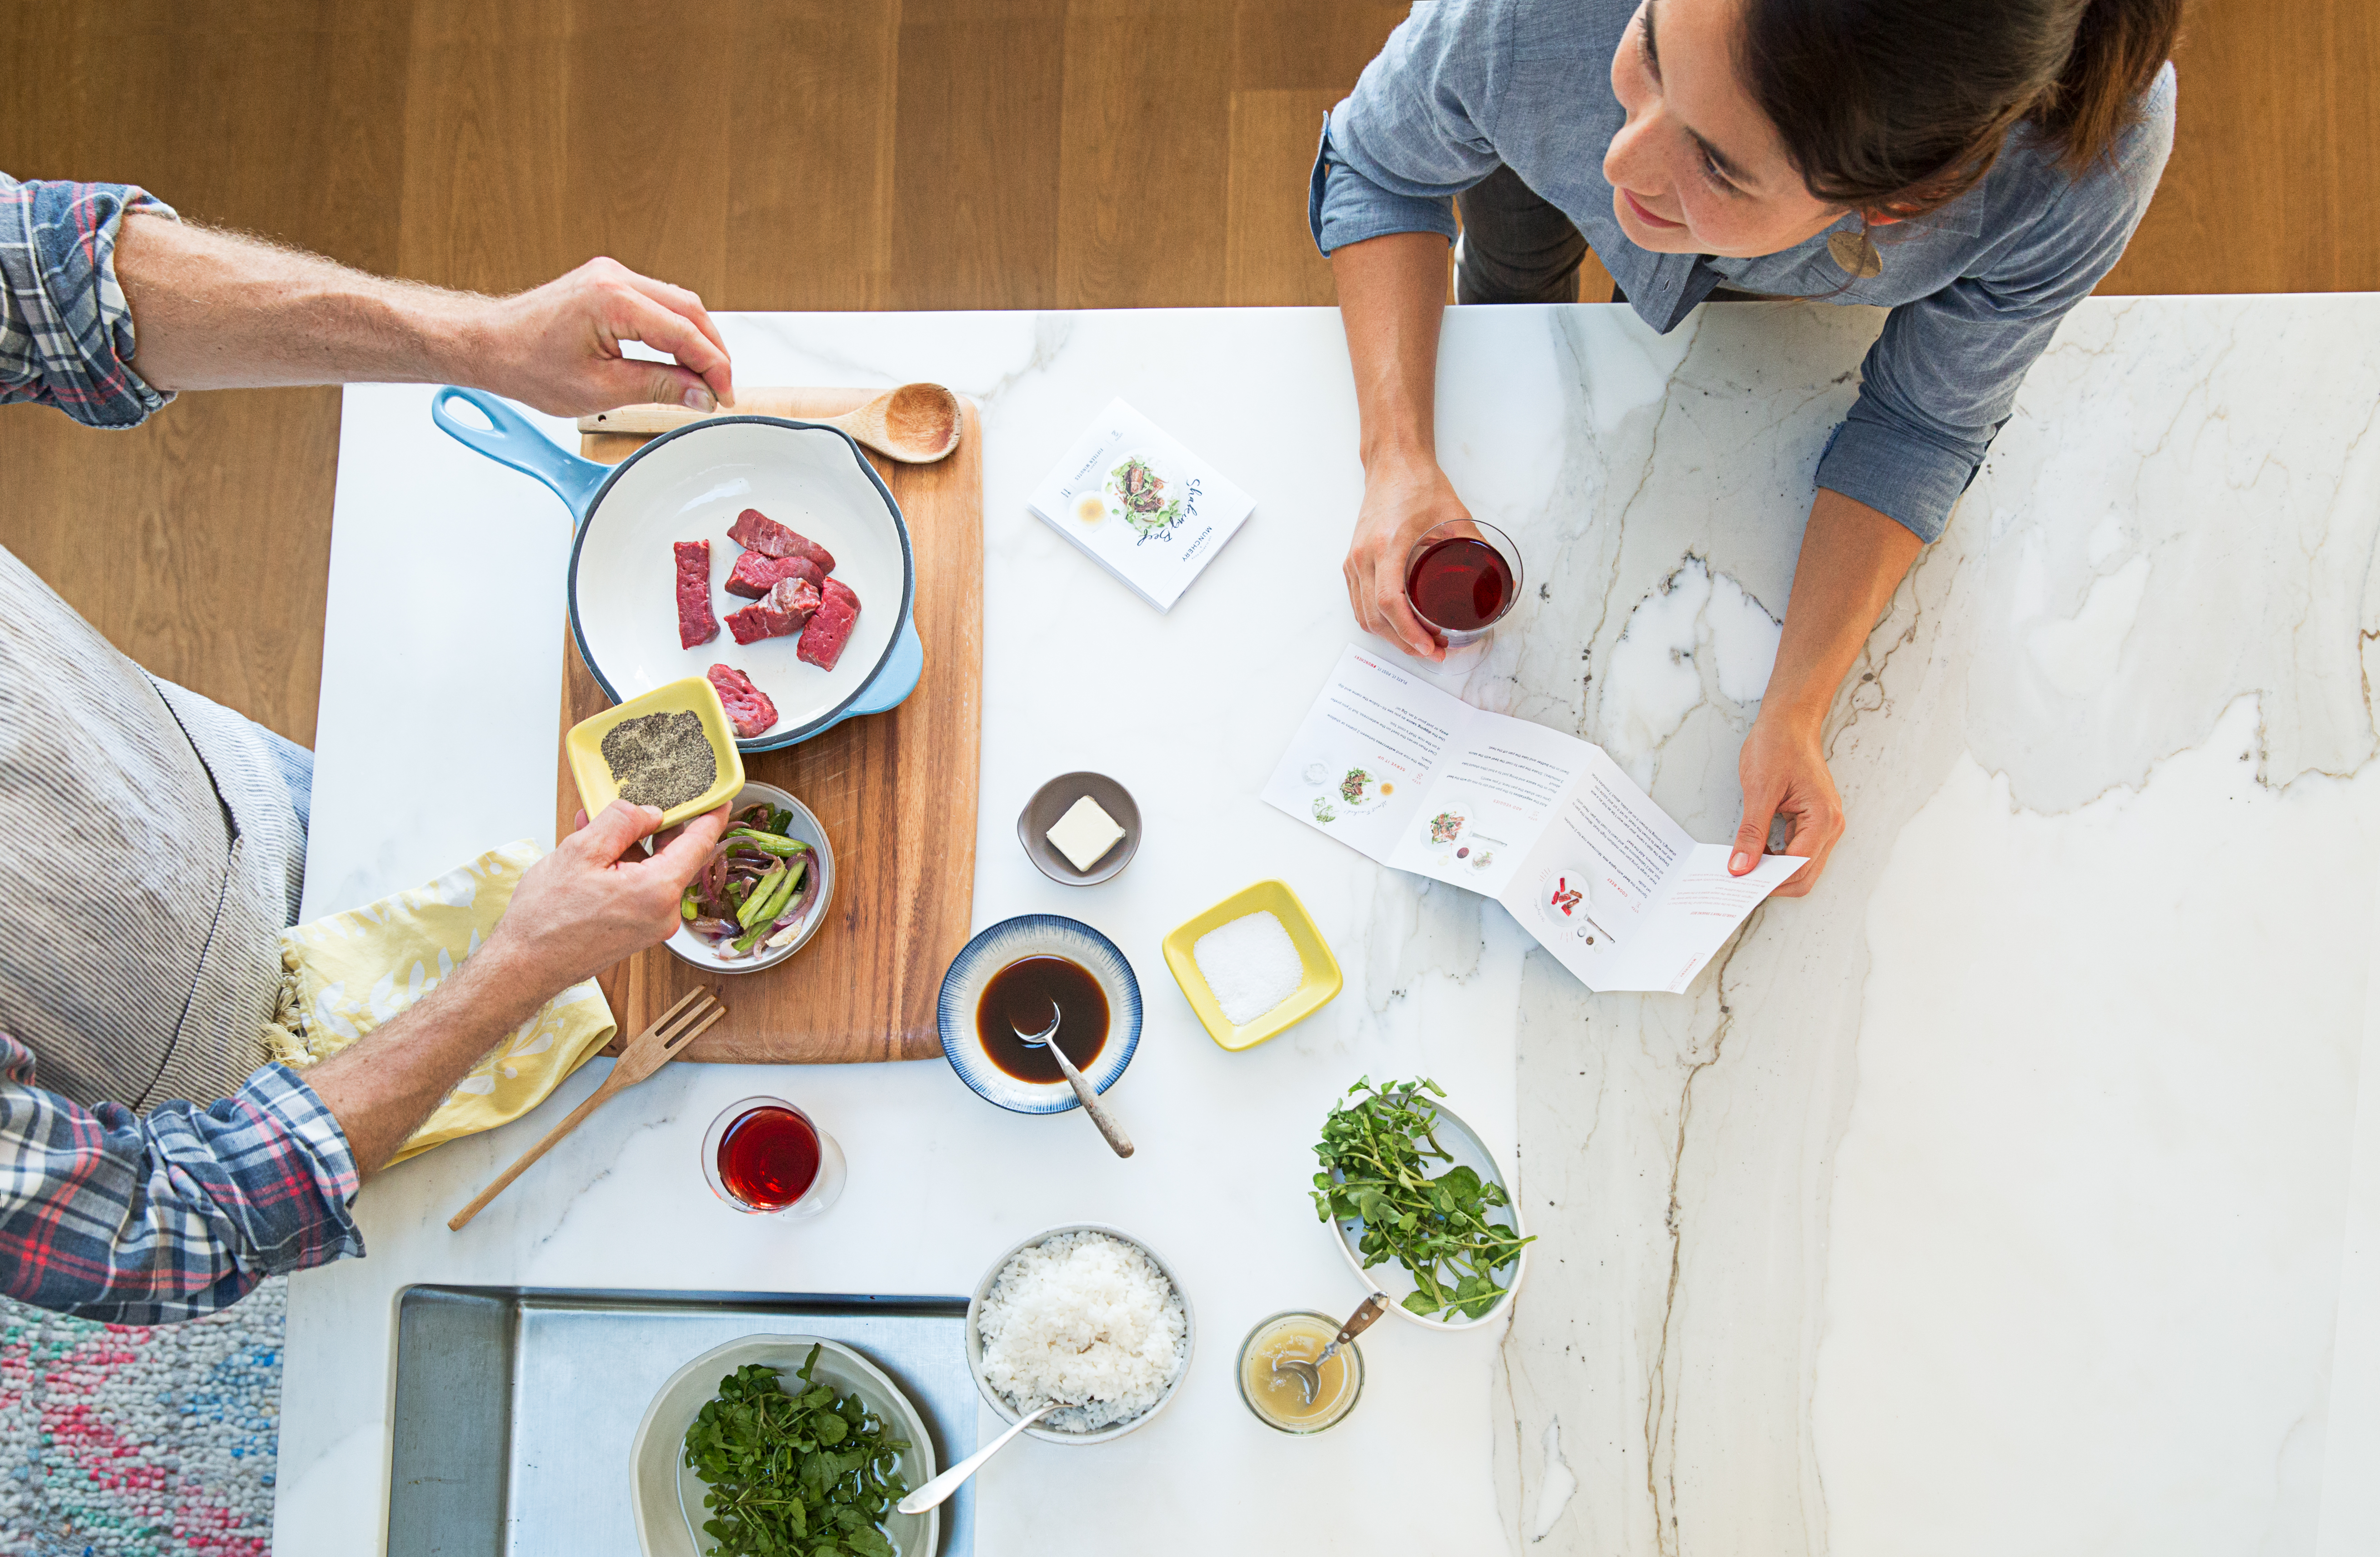 Meal Kit service Munchery is adding easy-to-assemble meal kits to its prepared food delivery business.